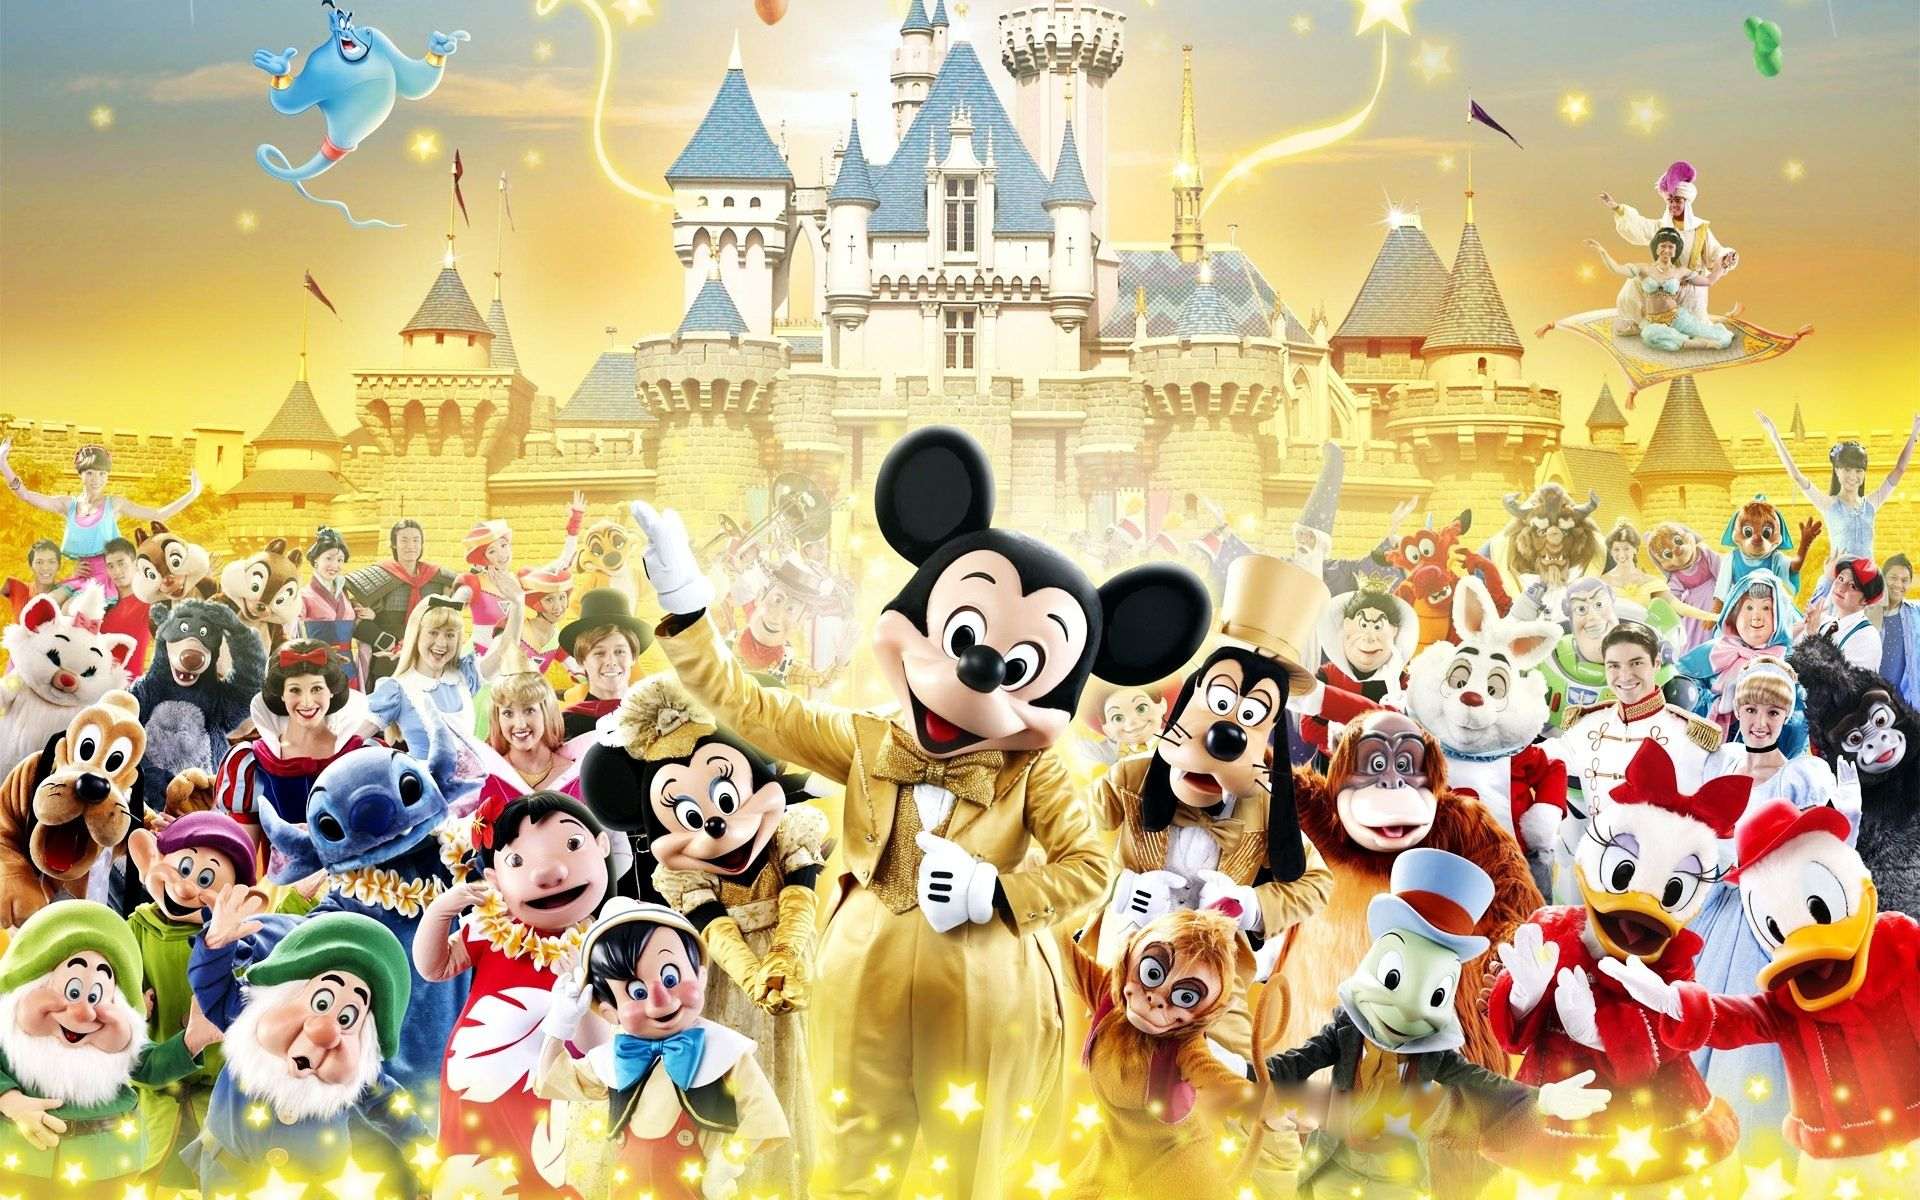 Disney Characters Hd Wallpaper